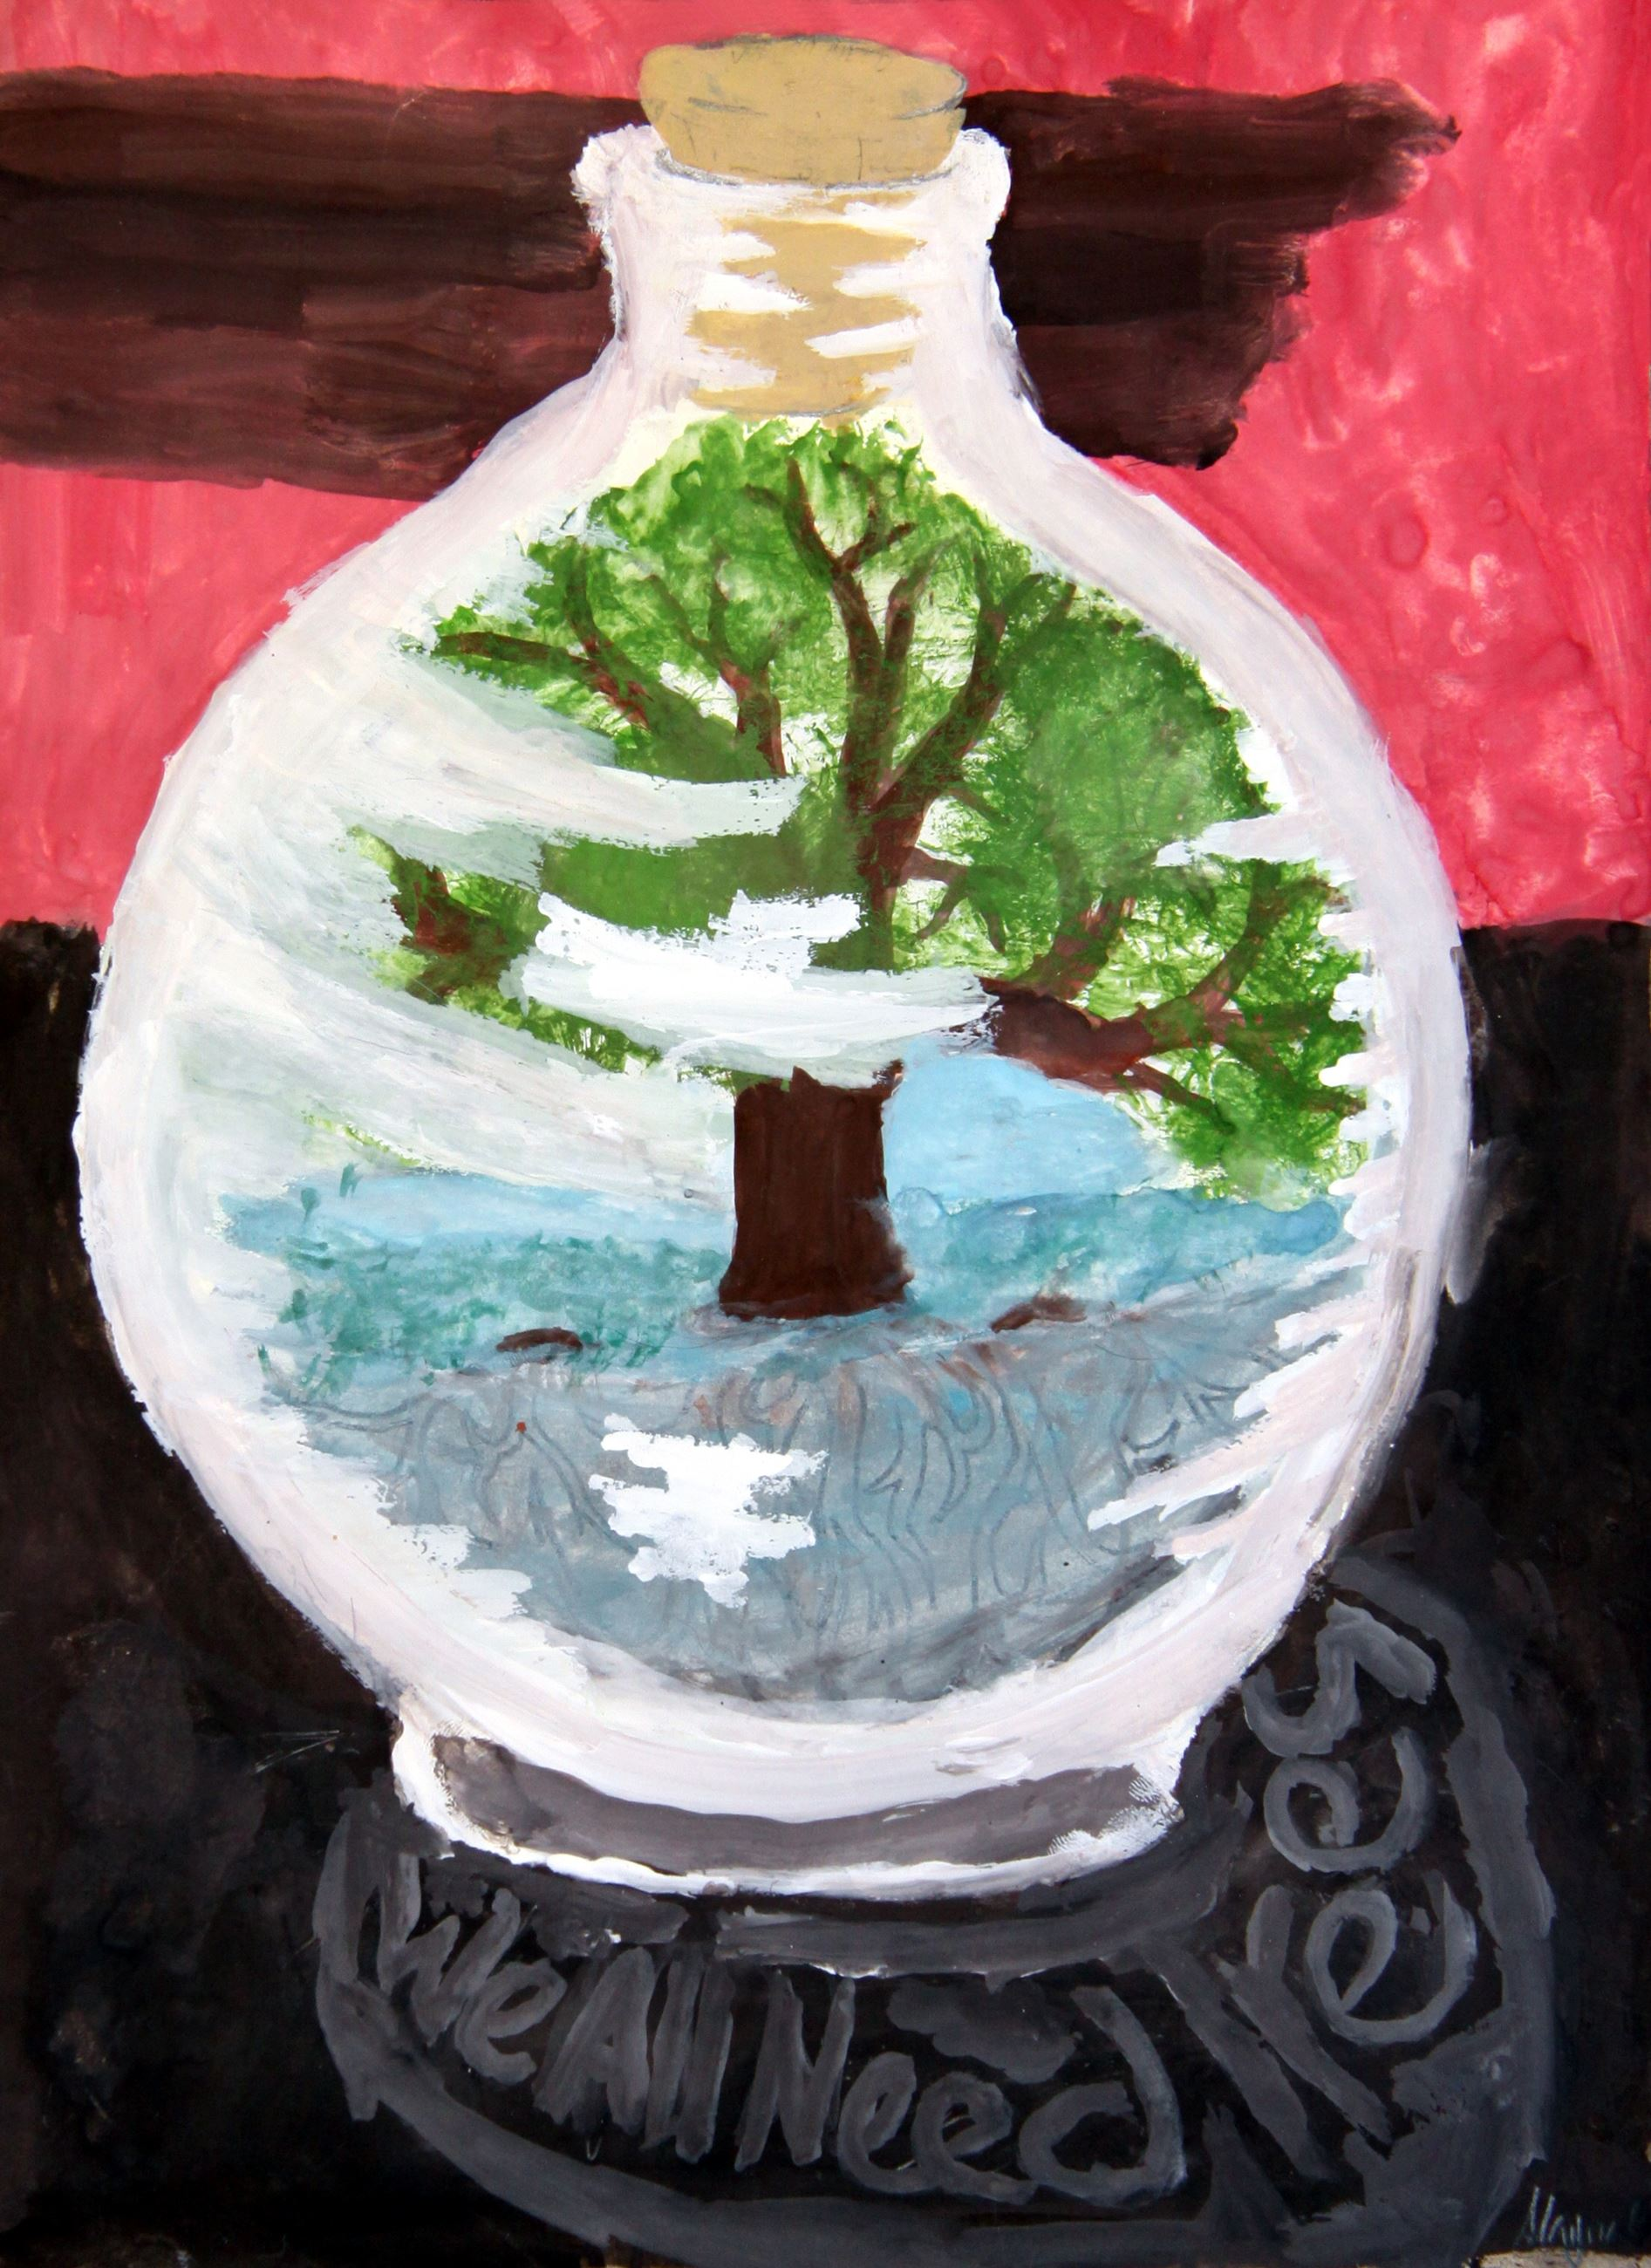 Grade 7 to 9, First Place Winner: Alayna Gardner